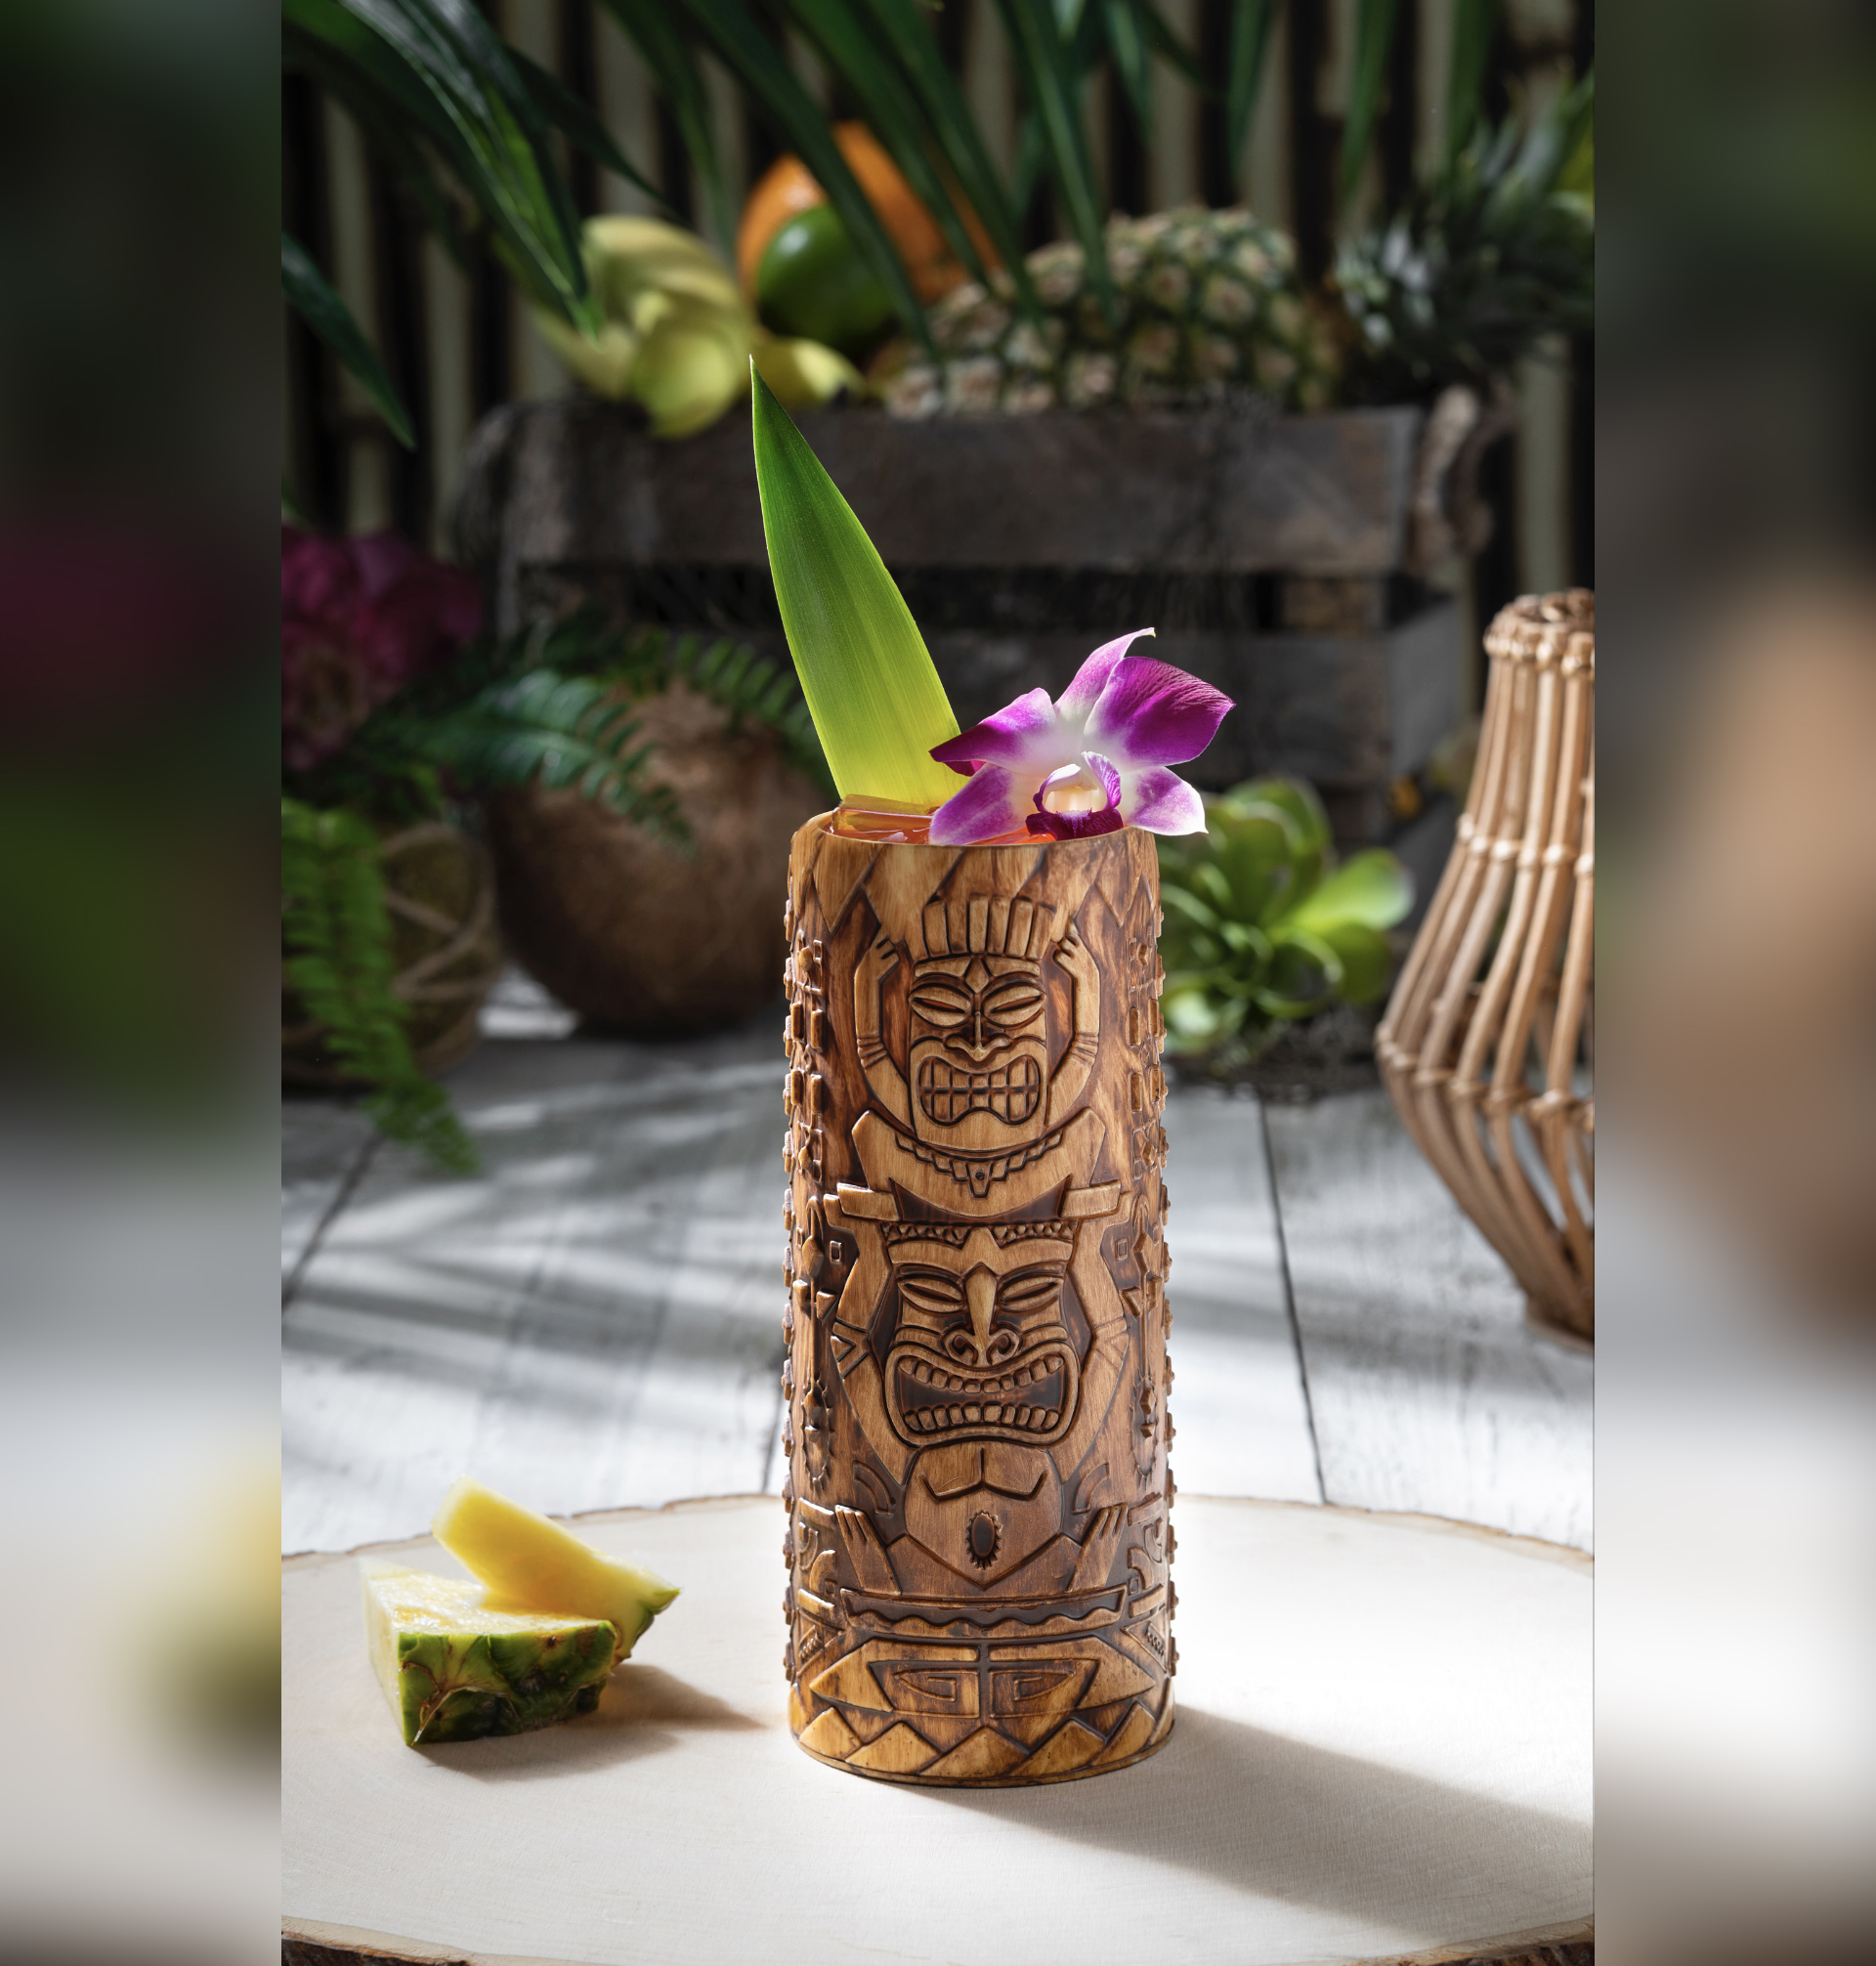 An Etched Tiki Cup from the upcoming Isla Nu-Bar. (Photo courtesy of Universal Studios Hollywood.)